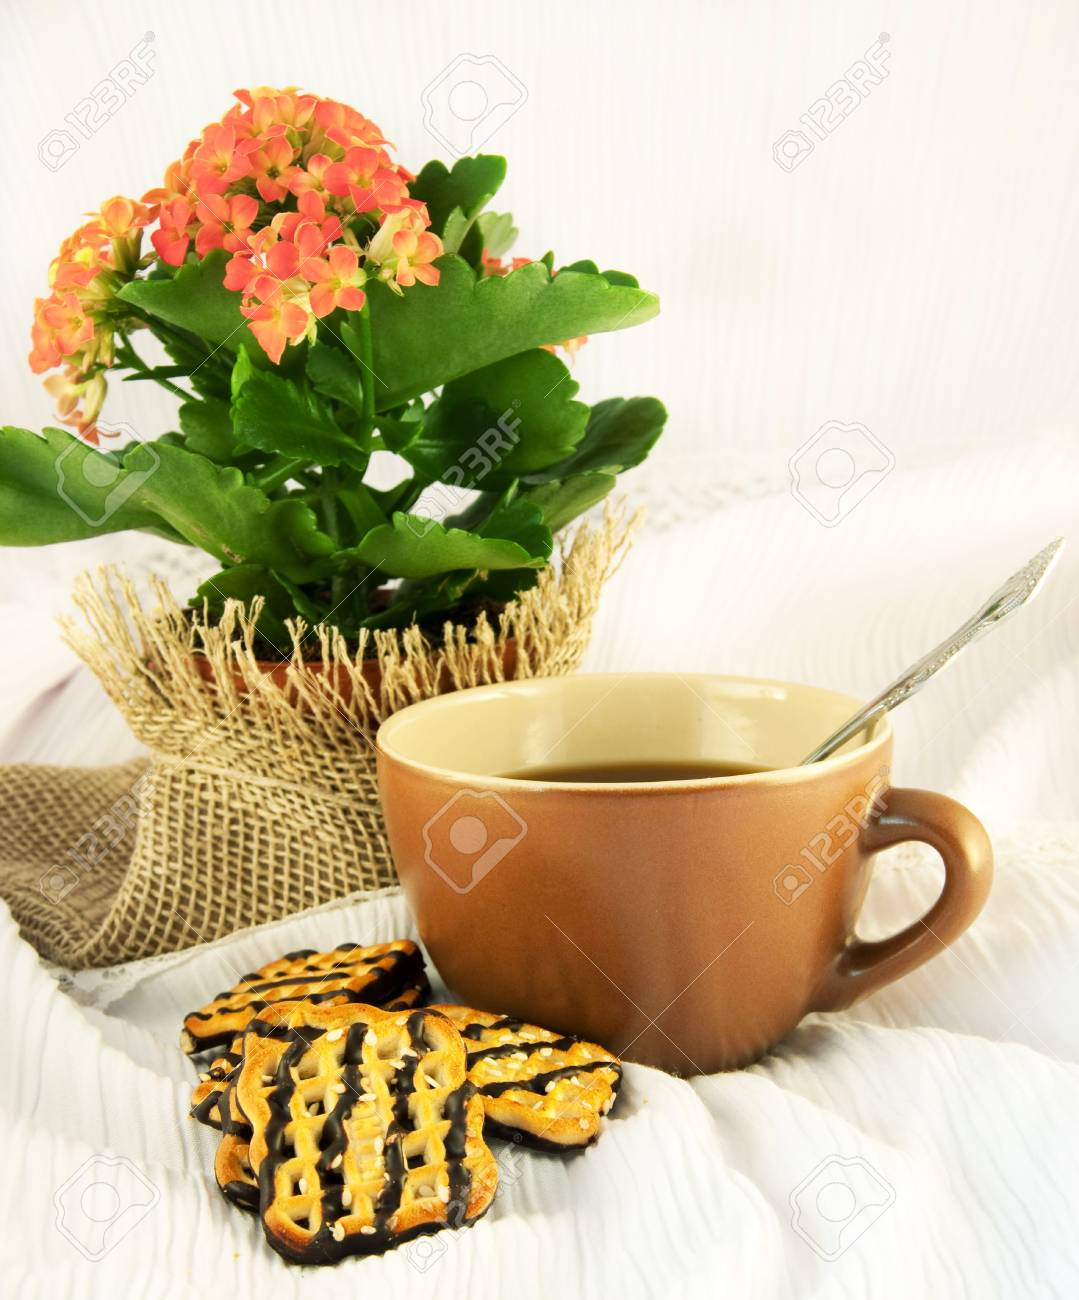 Tasty fruitcake and cup of coffee, natural flowers Stock Photo - 12662217